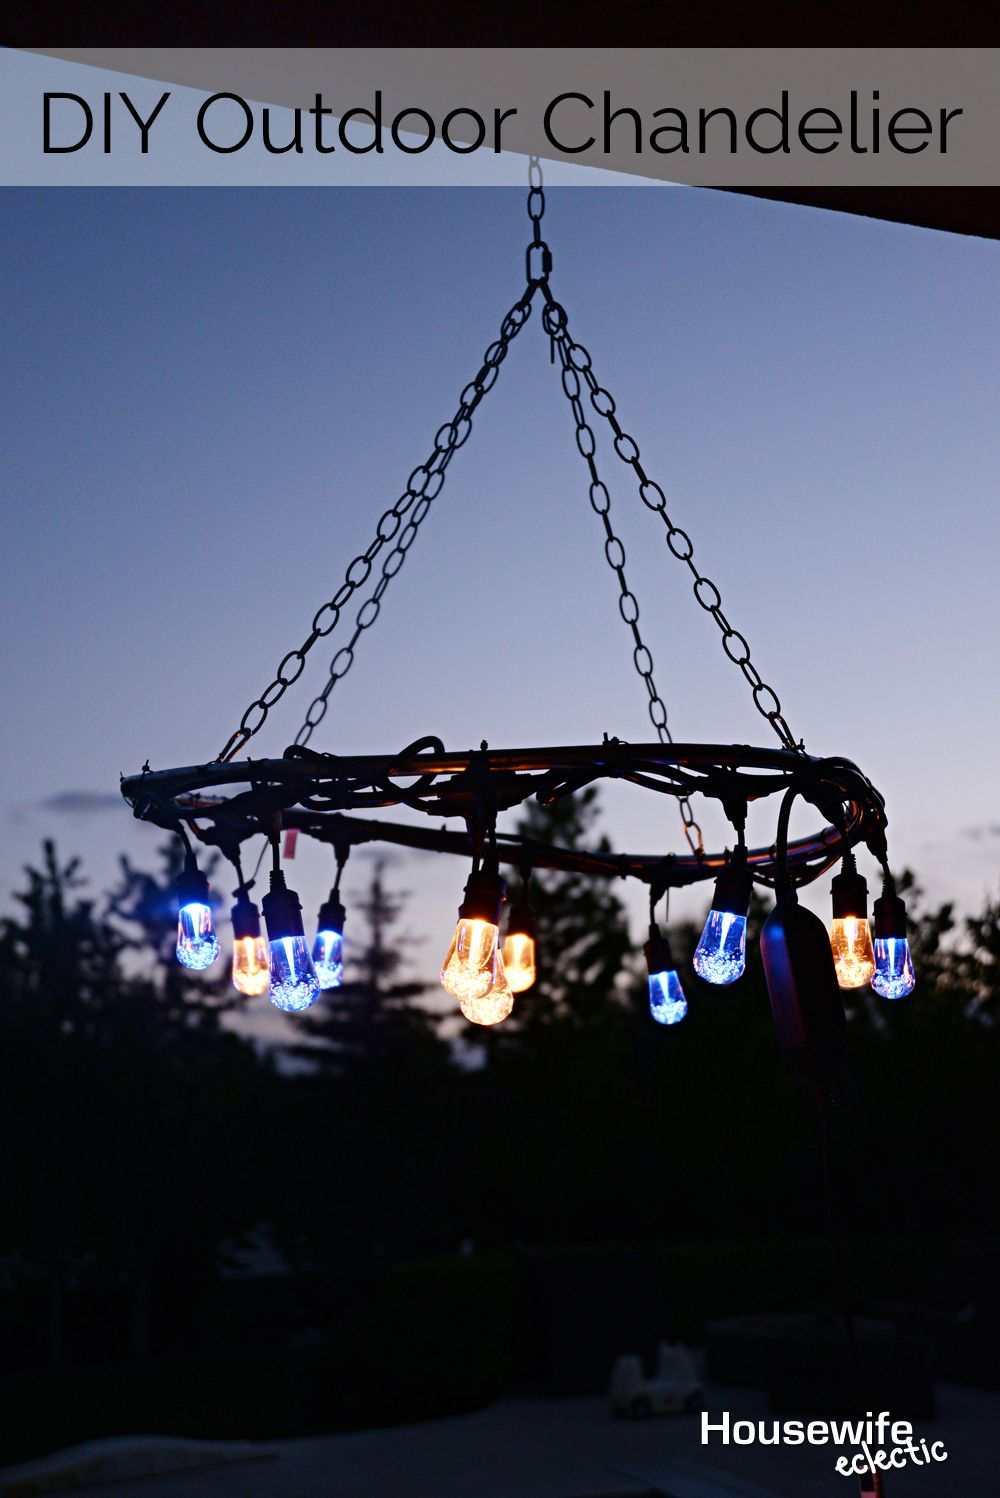 Diy outdoor chandelier family life craft and crafty how to make a super cool diy outdoor chandelier housewife eclectic arubaitofo Images